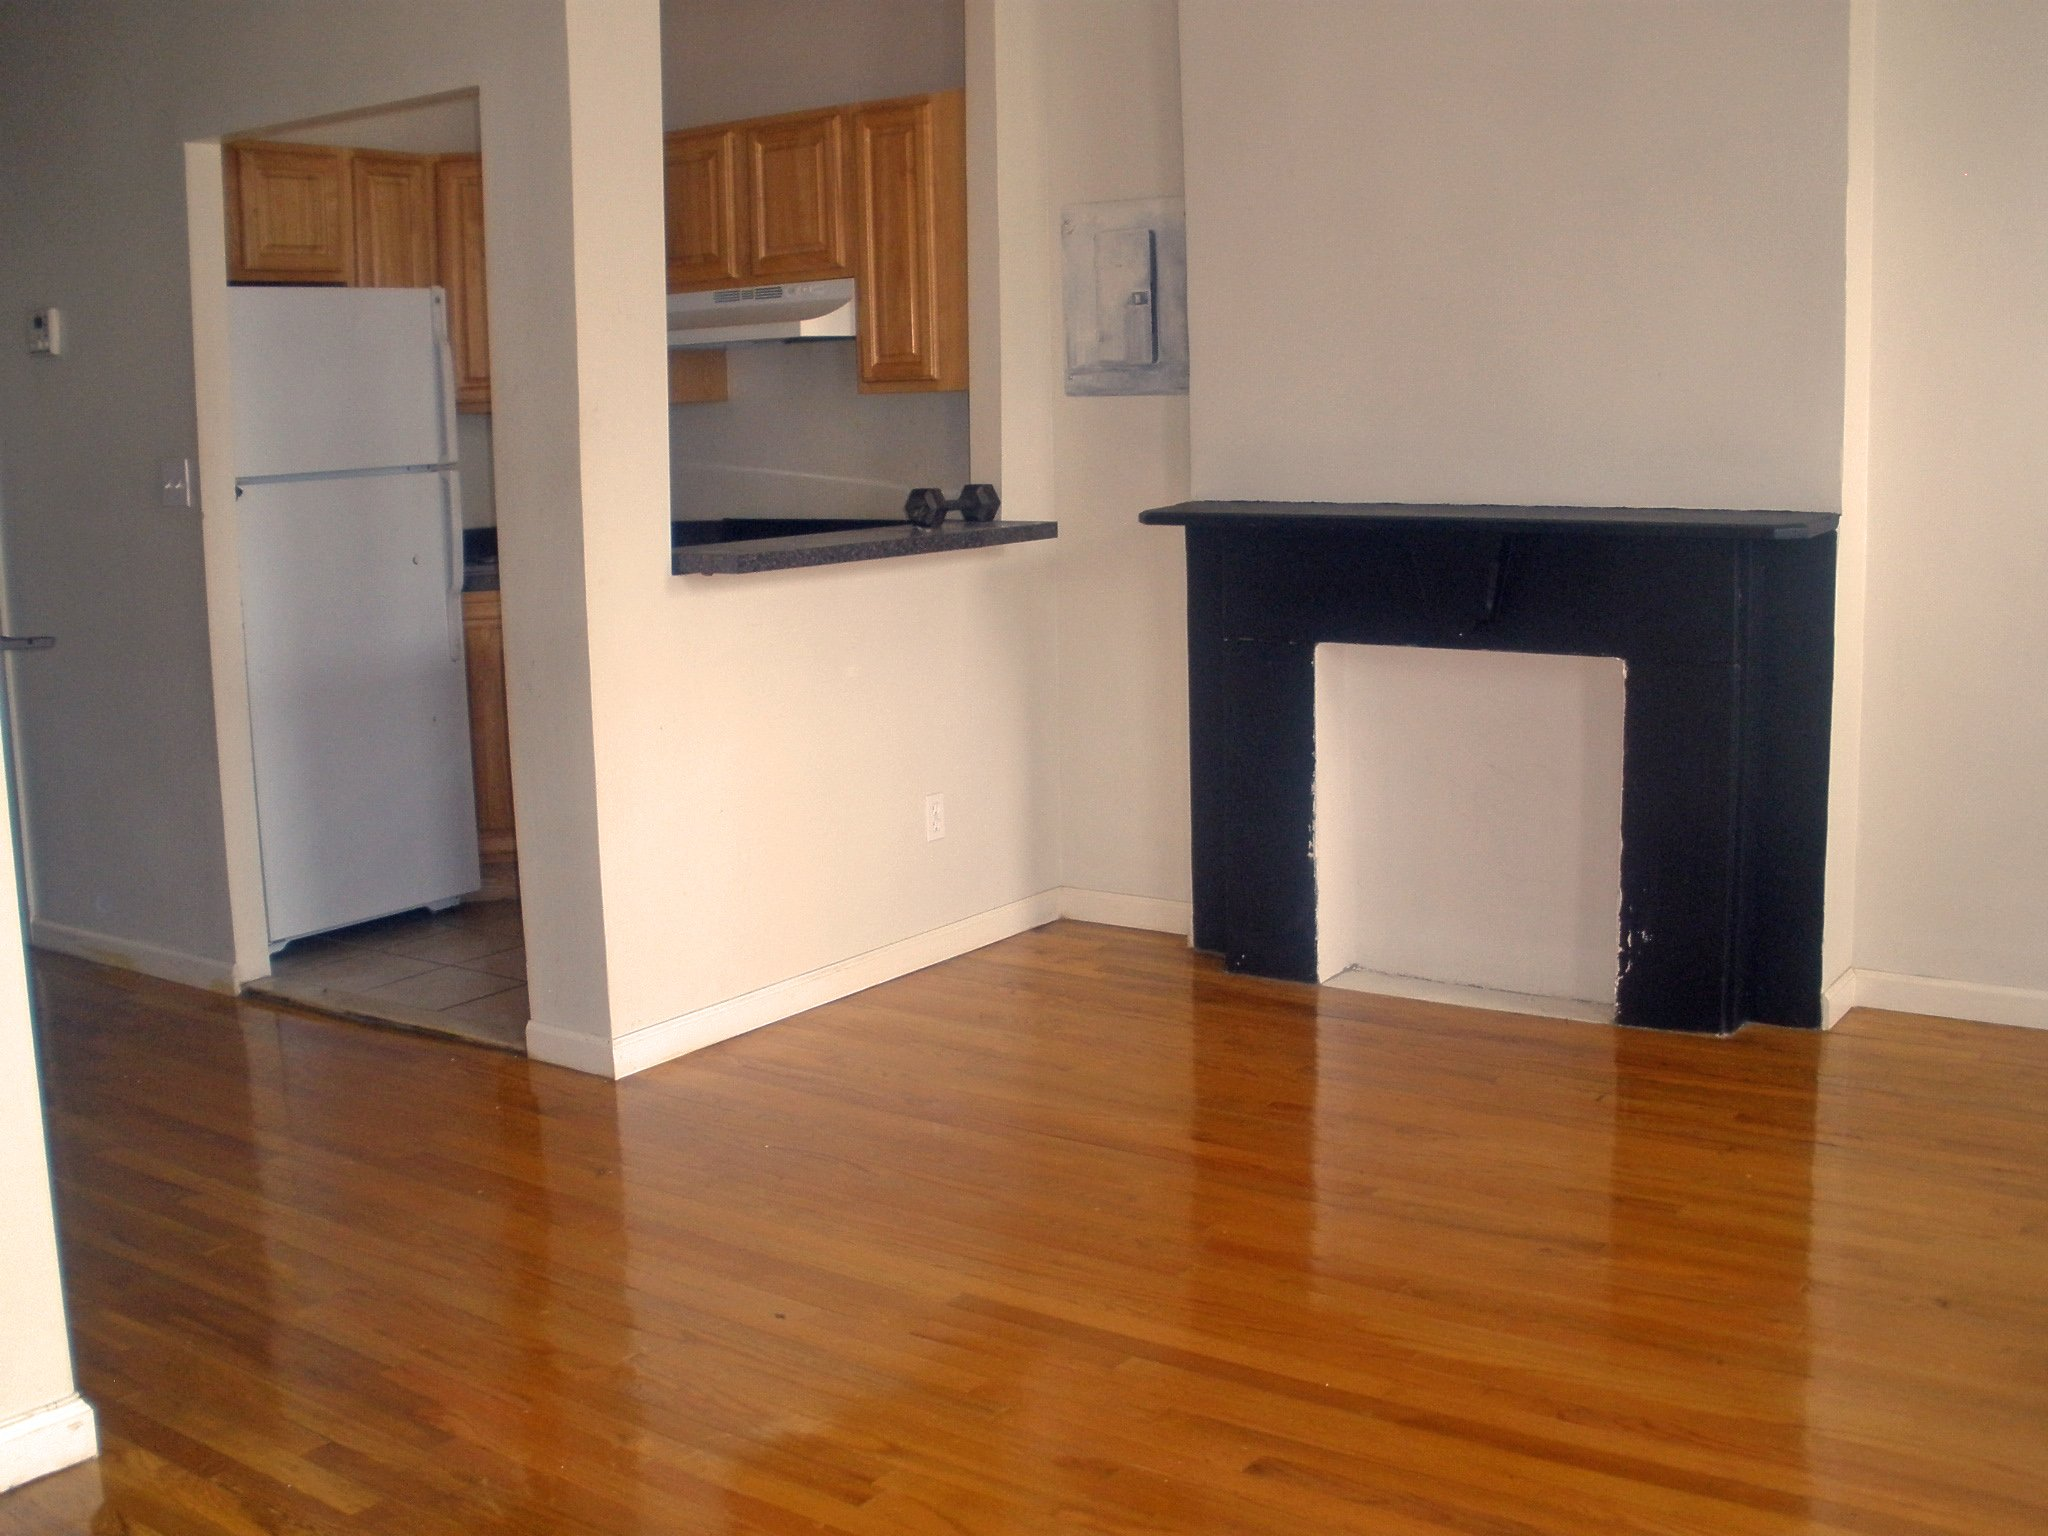 Bedford Stuyvesant Bedroom Apartment For Rent Brooklyn